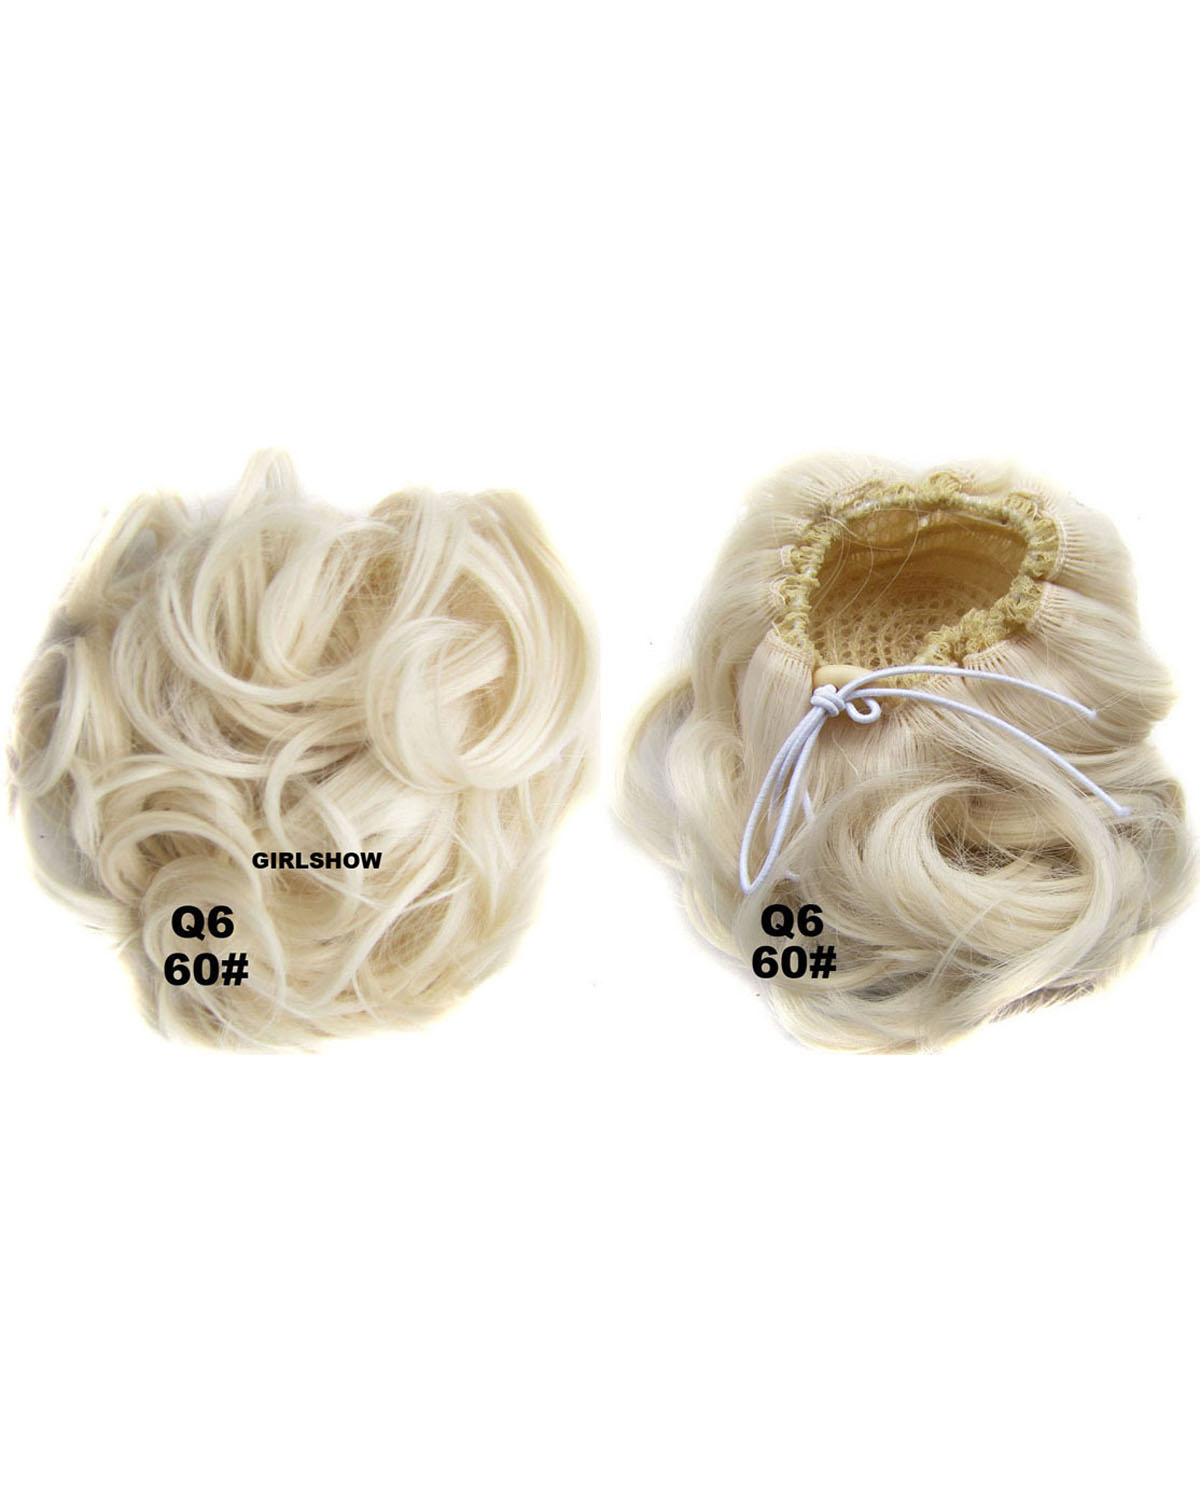 Ladies Graceful and Clean Curly and Short Hair Buns Drawstring Synthetic Hair Extension Bride Scrunchies 60#